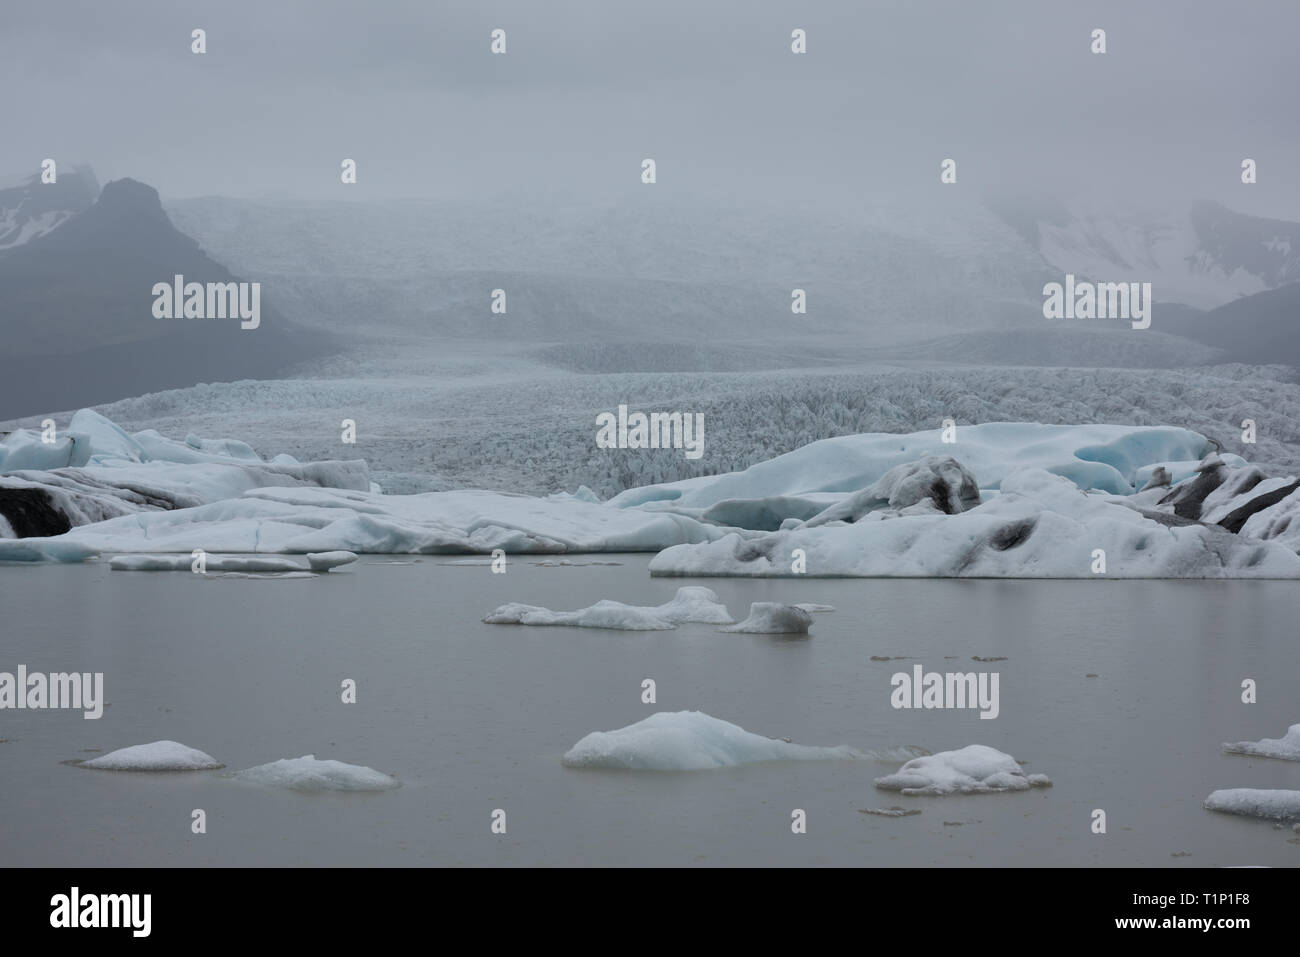 Iceland, Jokulsarlon lagoon, Beautiful cold landscape picture of icelandic glacier lagoon bay Stock Photo